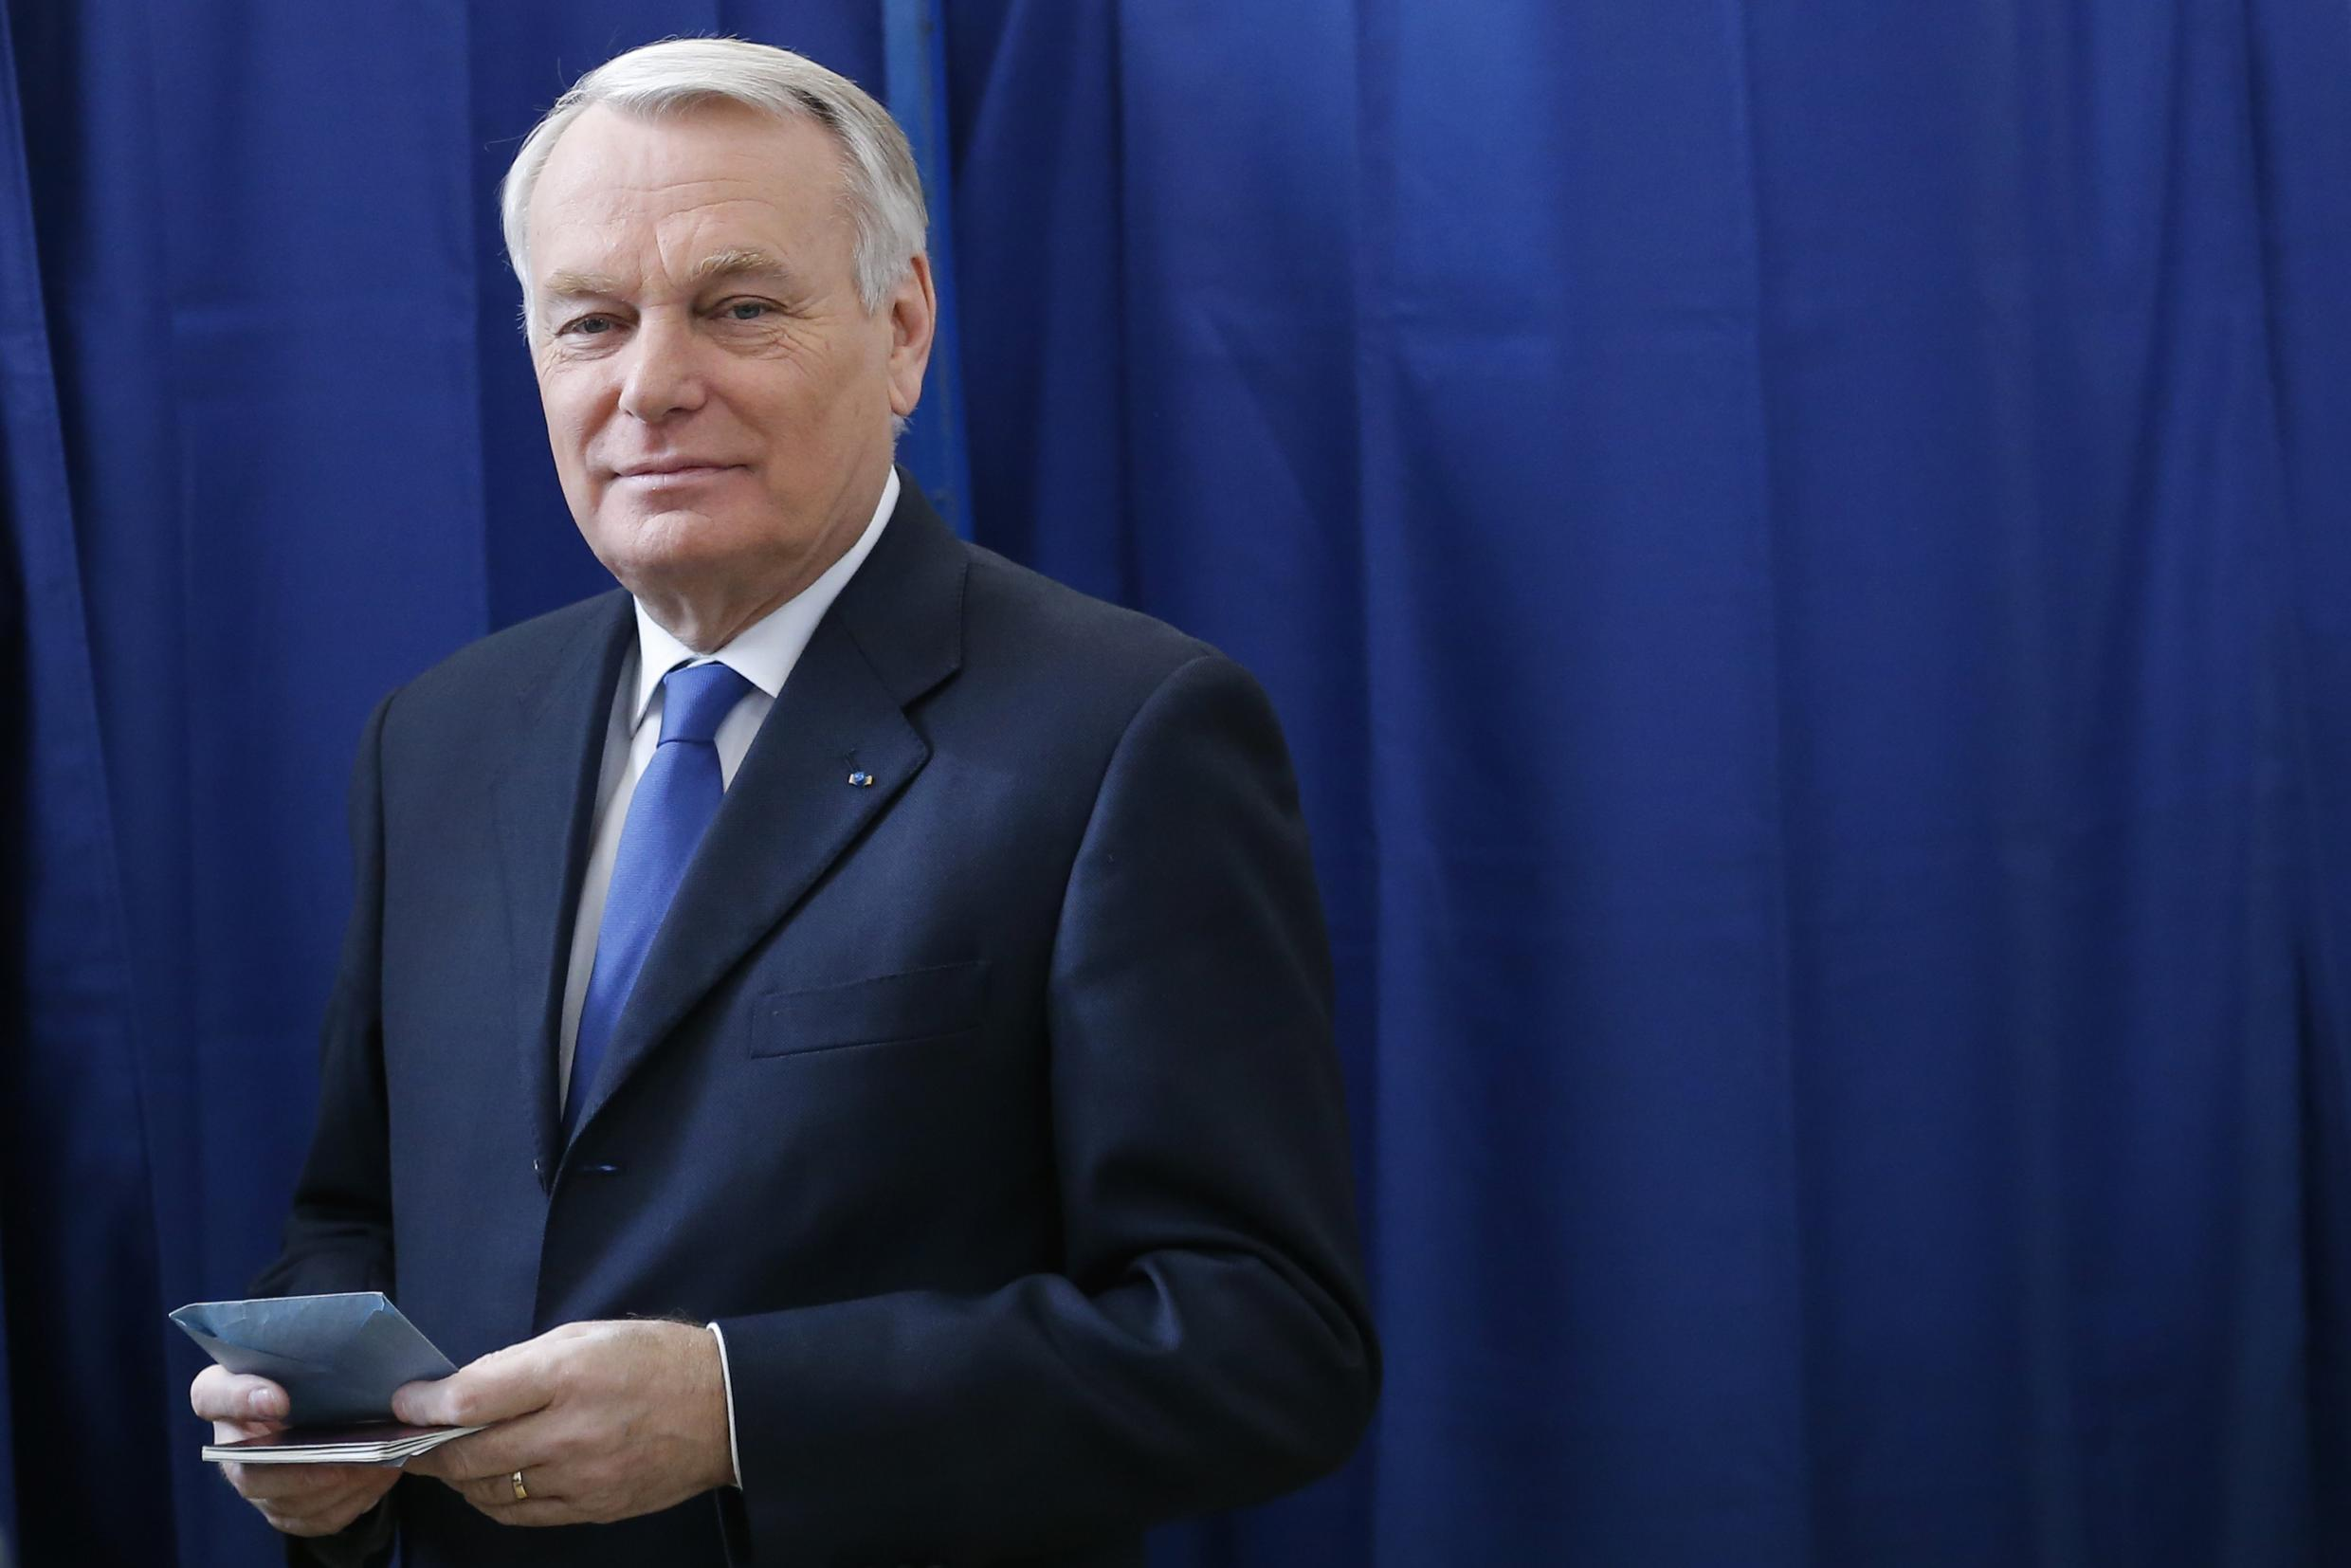 Jean-Marc Ayrault has been named as France's new foreign minister